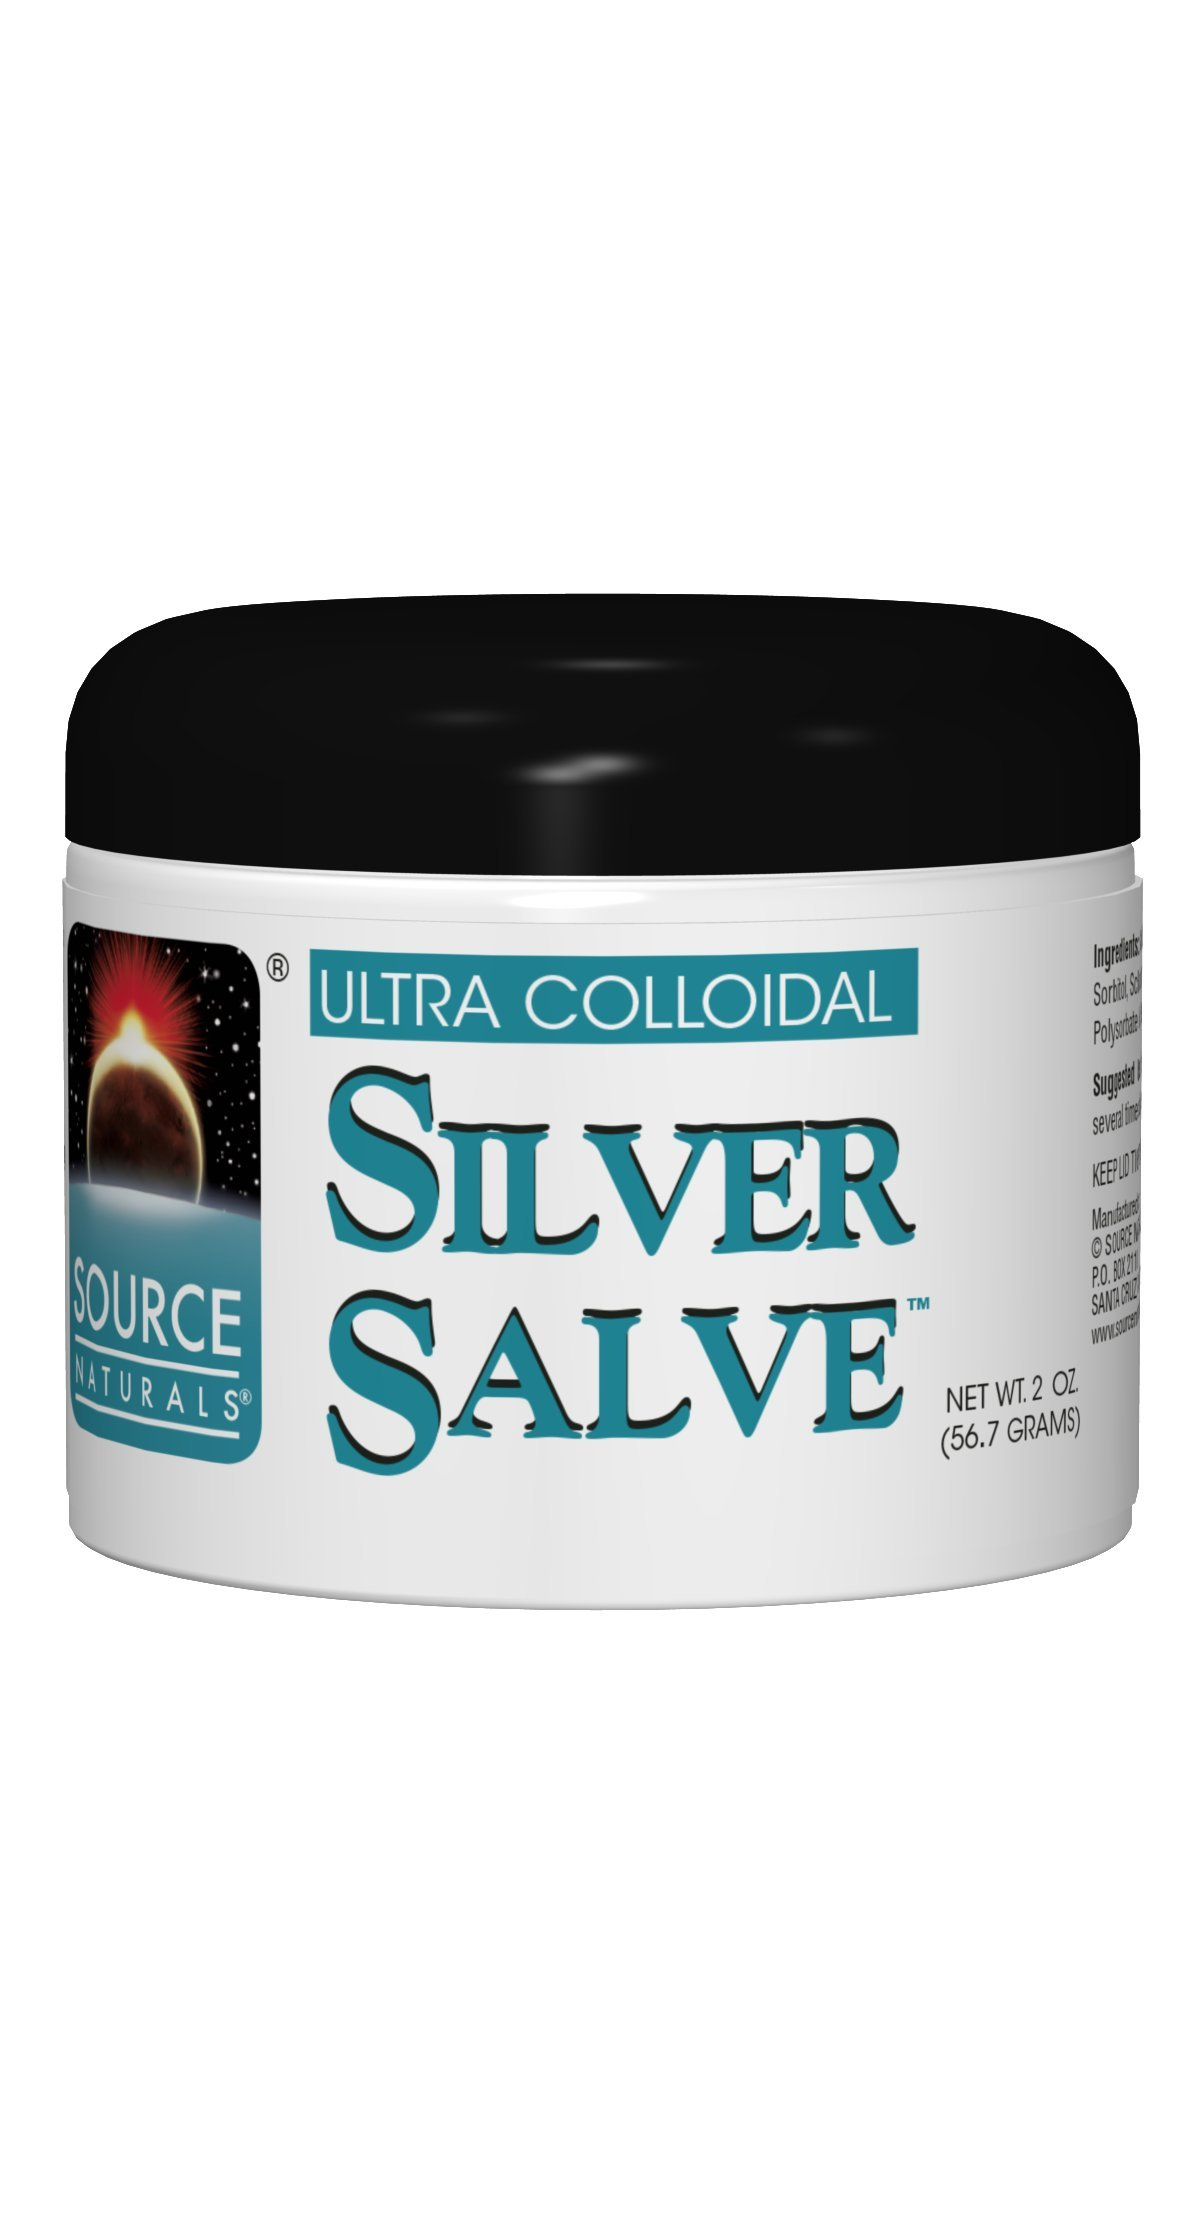 Source Natural Ultra Colloidal Silver Topical Salve - Pure, Mineral & Herbal Supplement - With Citric Acid & Lavender Essential Oil - 2 oz